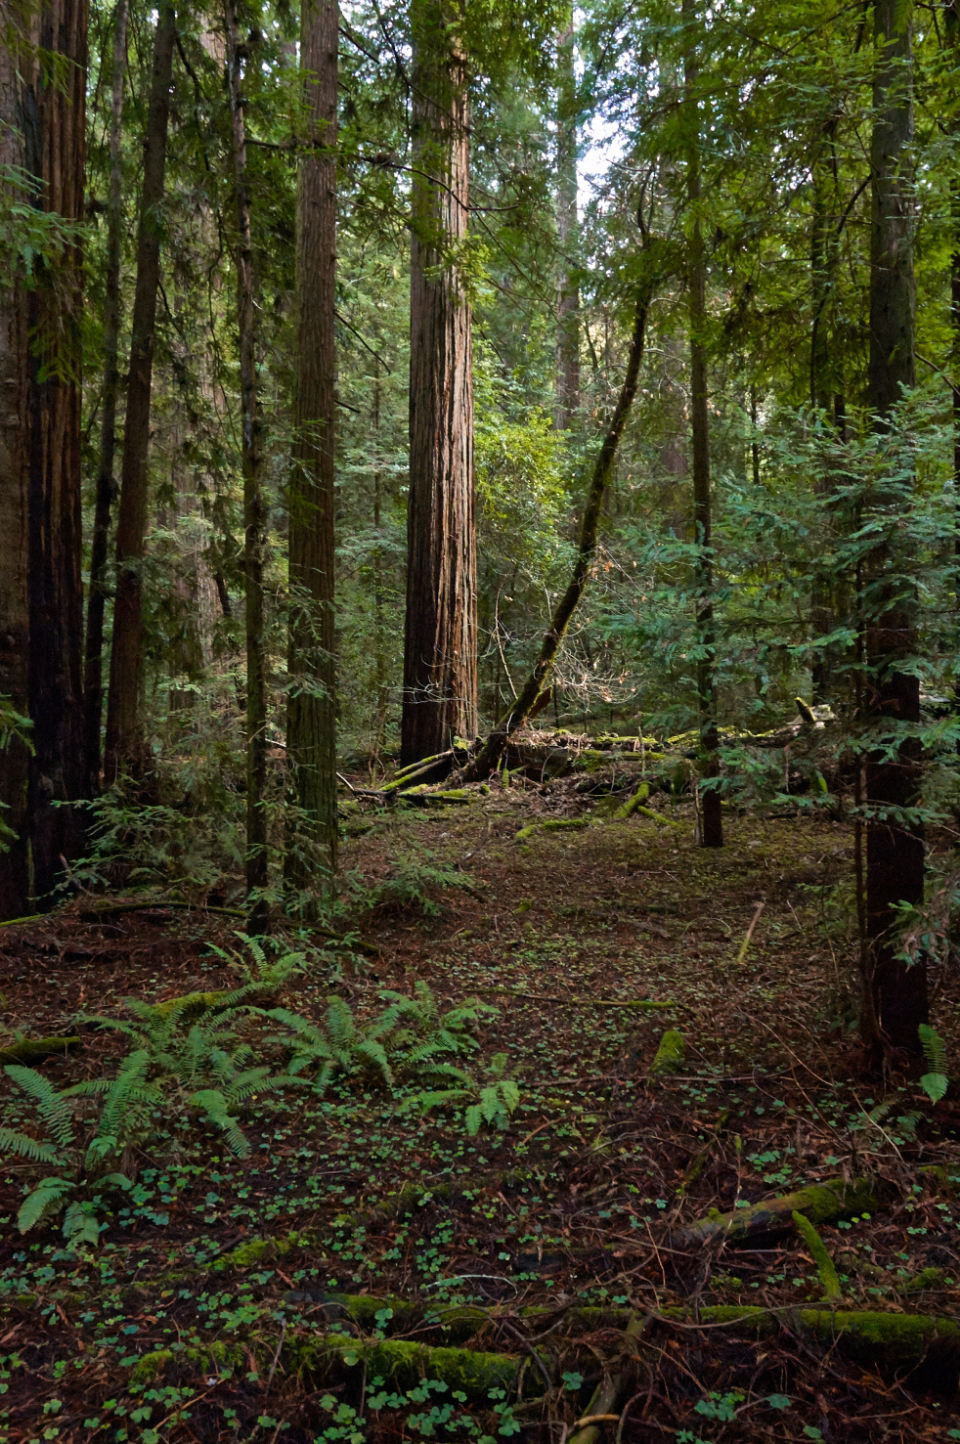 trees forest woods nature path trail branches leaves redwood mossy outdoors adventure trek hike fallen